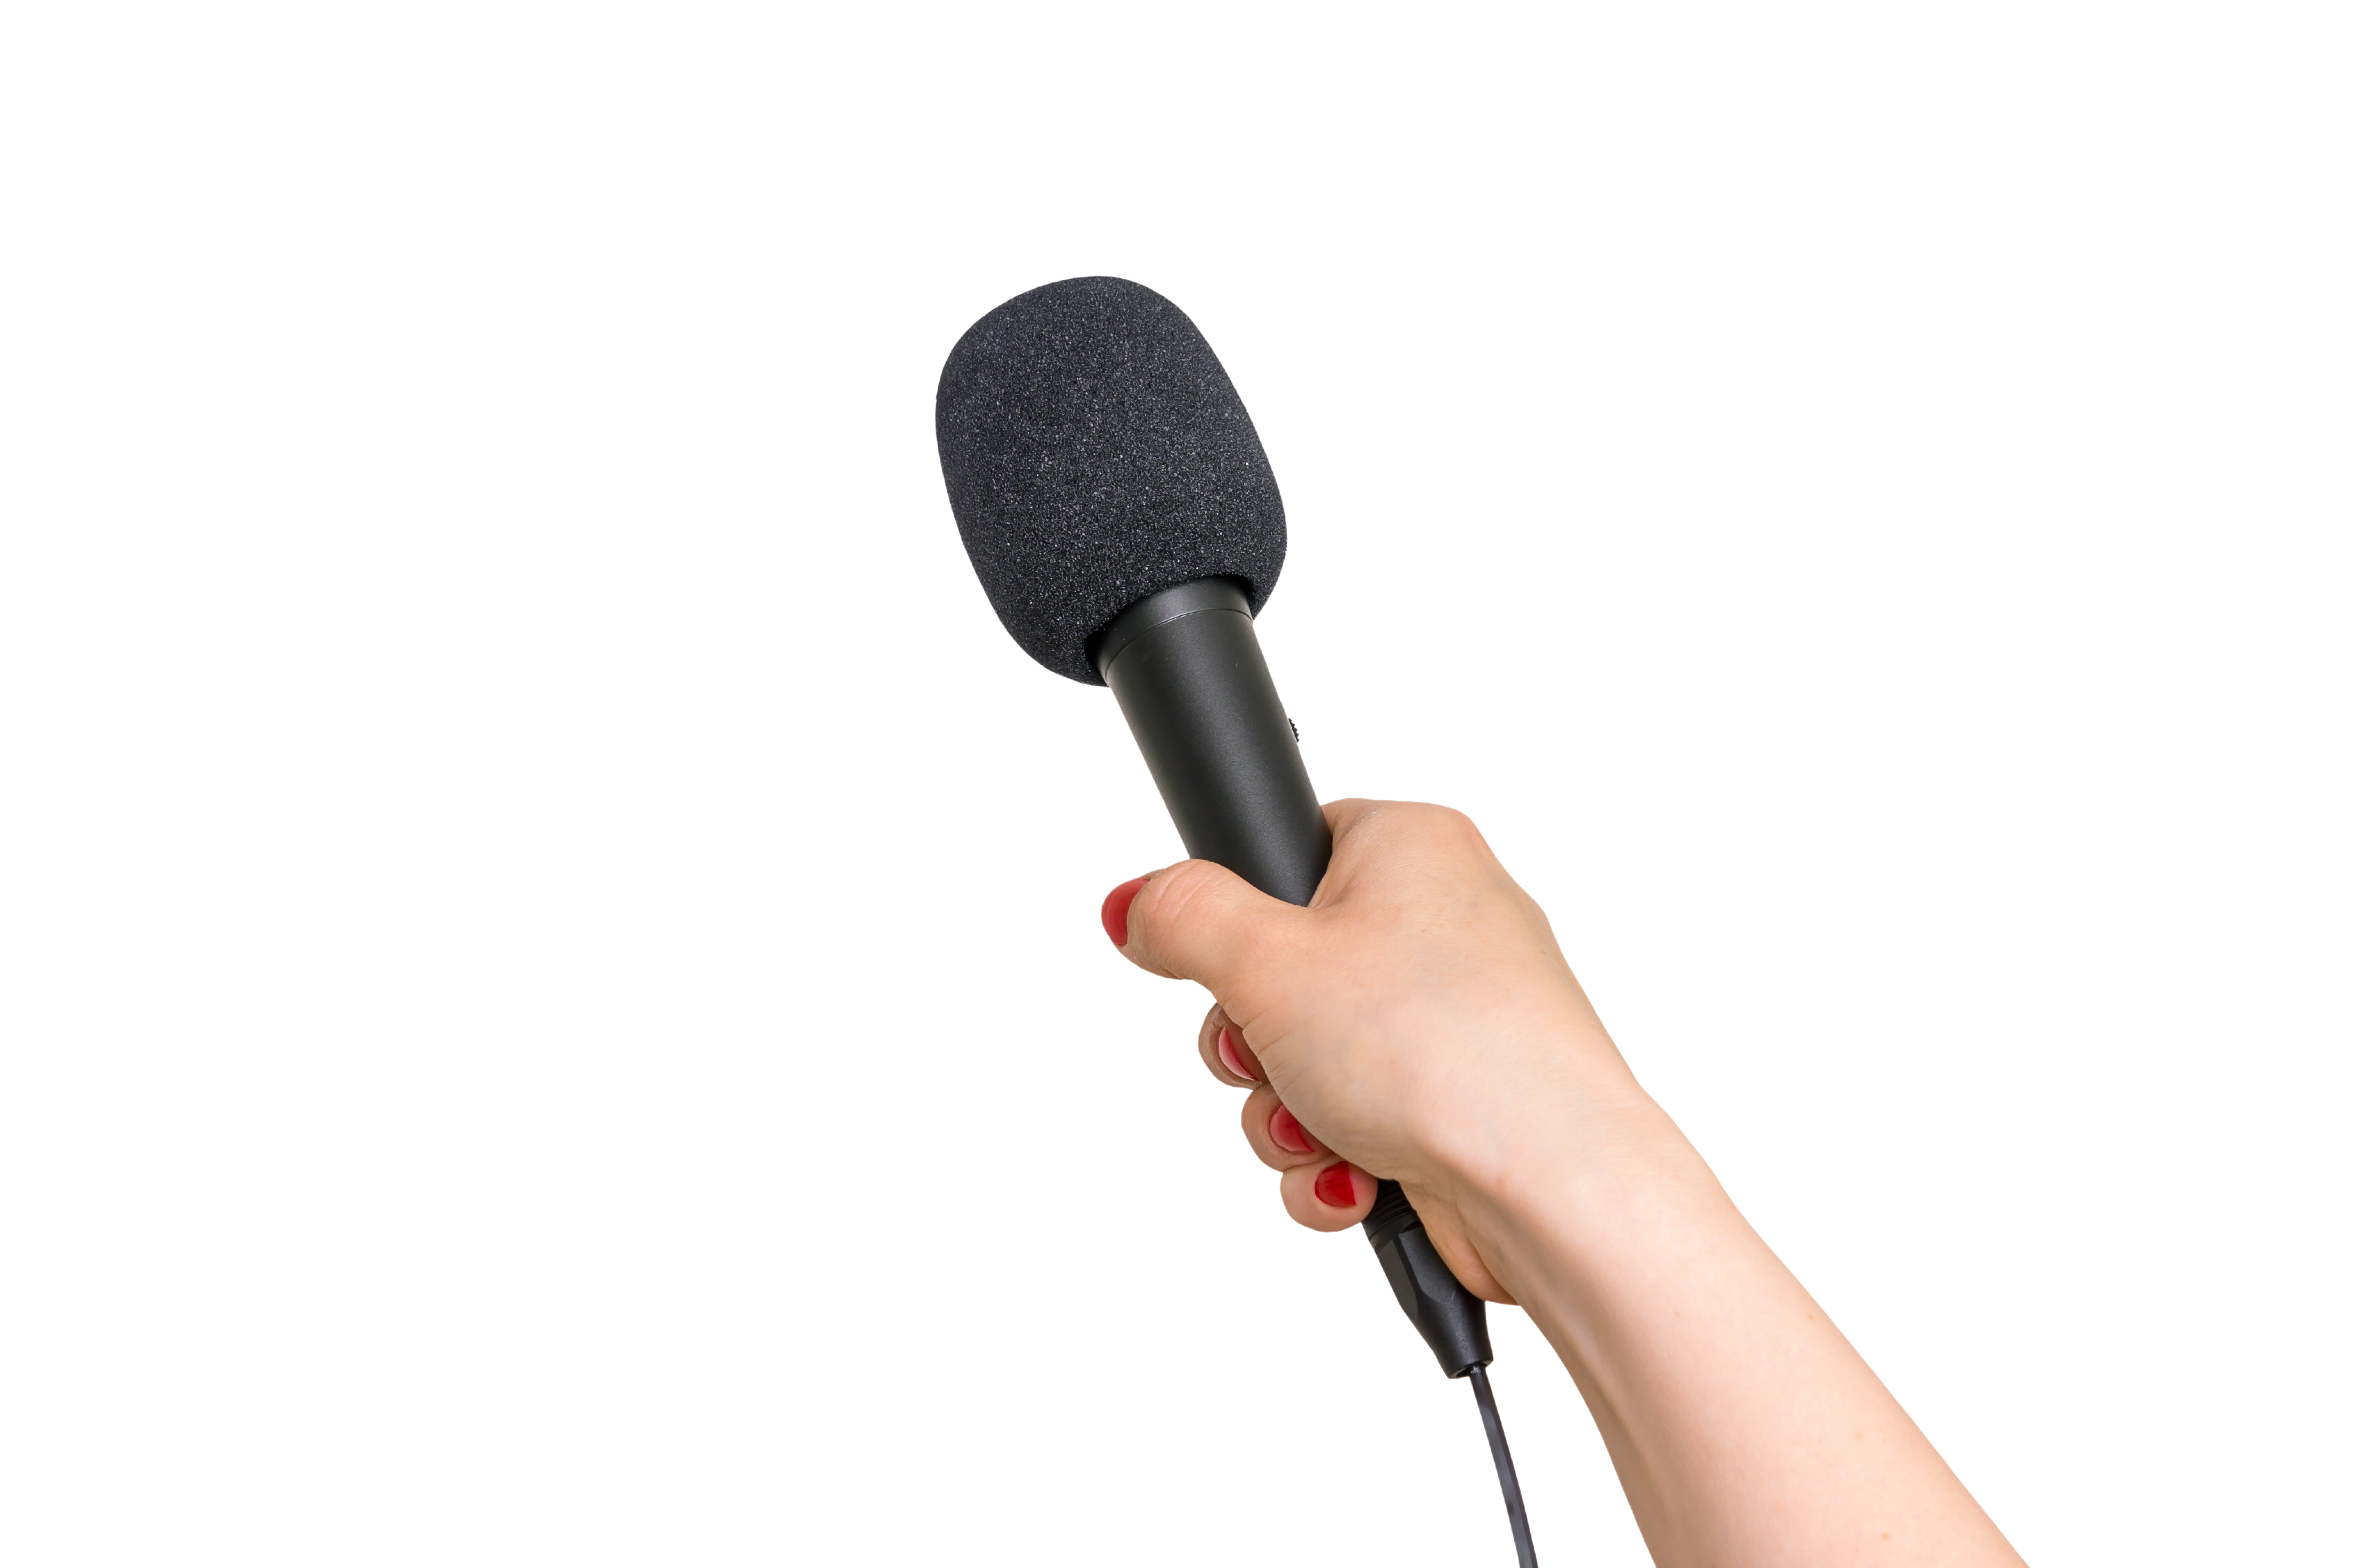 Hand of reporter with black microphone isolated on white - journalism and broadcasting concept